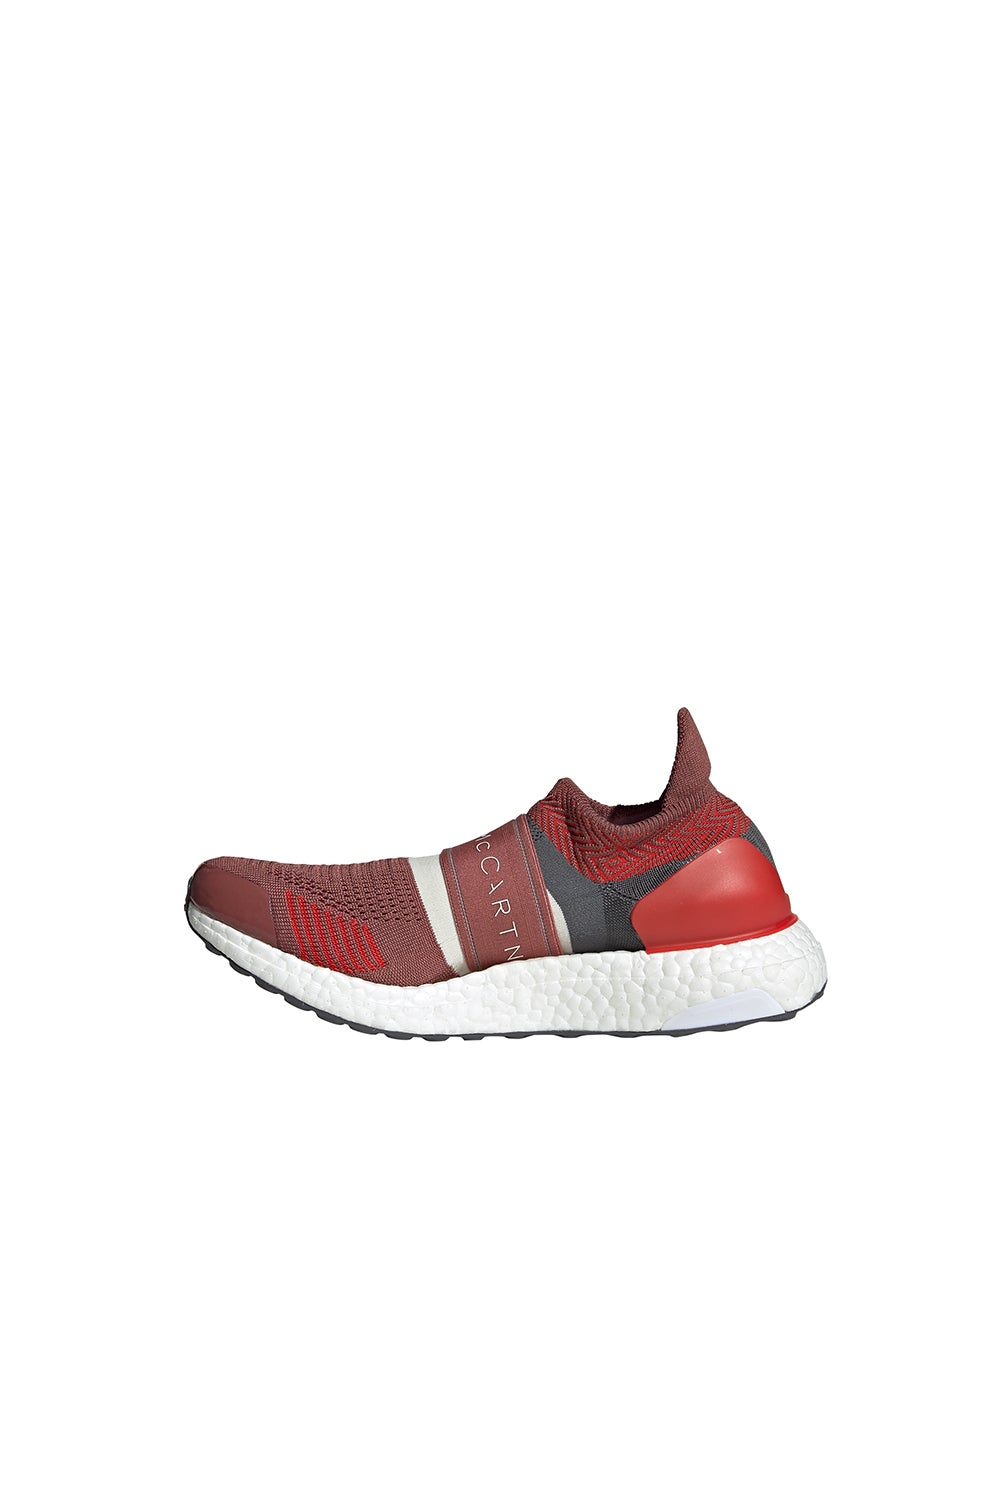 adidas by Stella McCartney Ultraboost X 3D Shoes  Clay Red/Intense Pink/Red